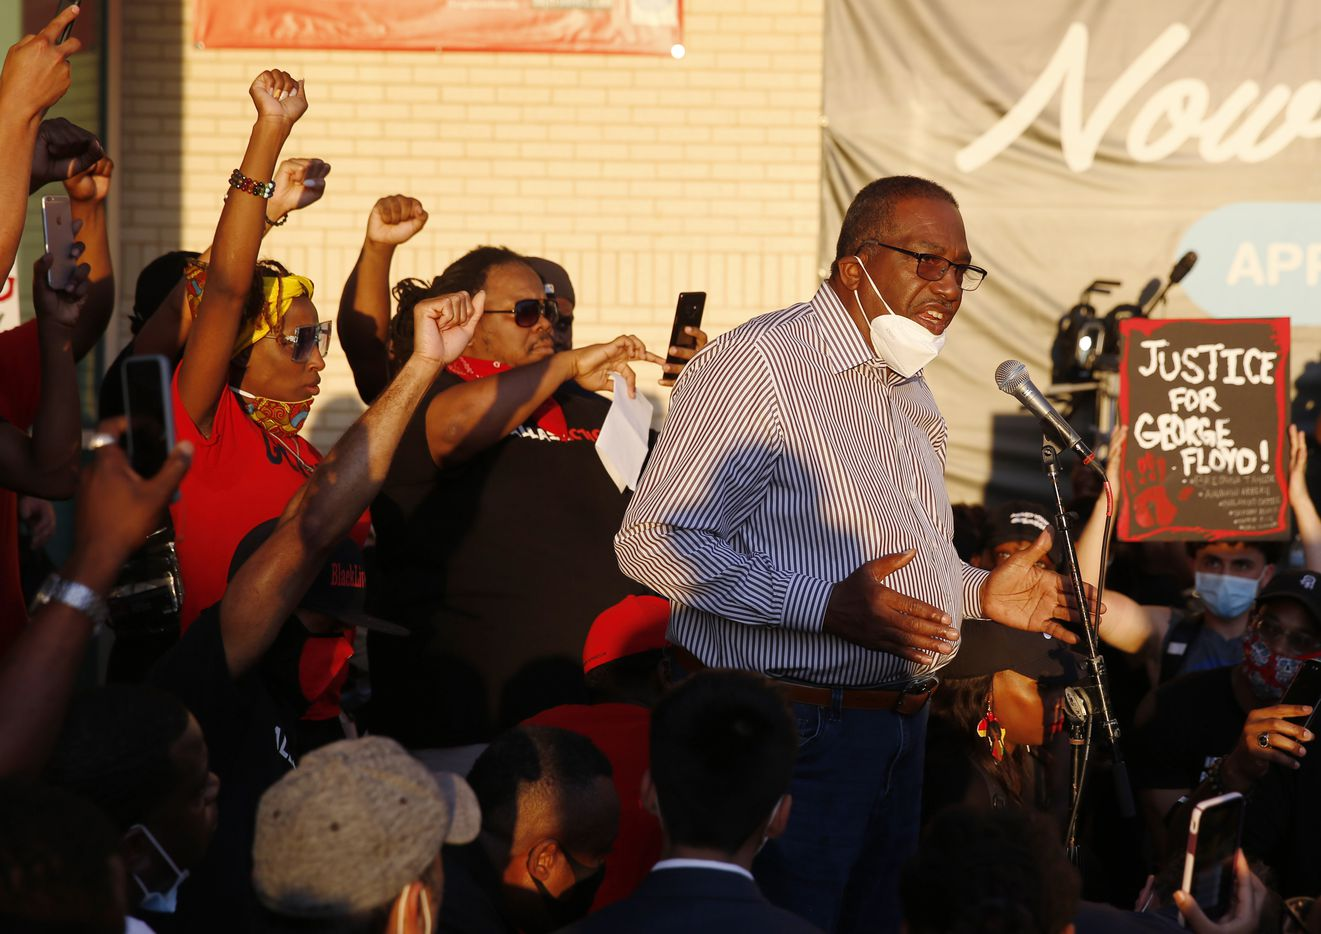 Texas Senator Royce West speaks to protesters during a demonstration against police brutality in downtown Dallas, on Friday, May 29, 2020. George Floyd died in police custody in Minneapolis on May 25.